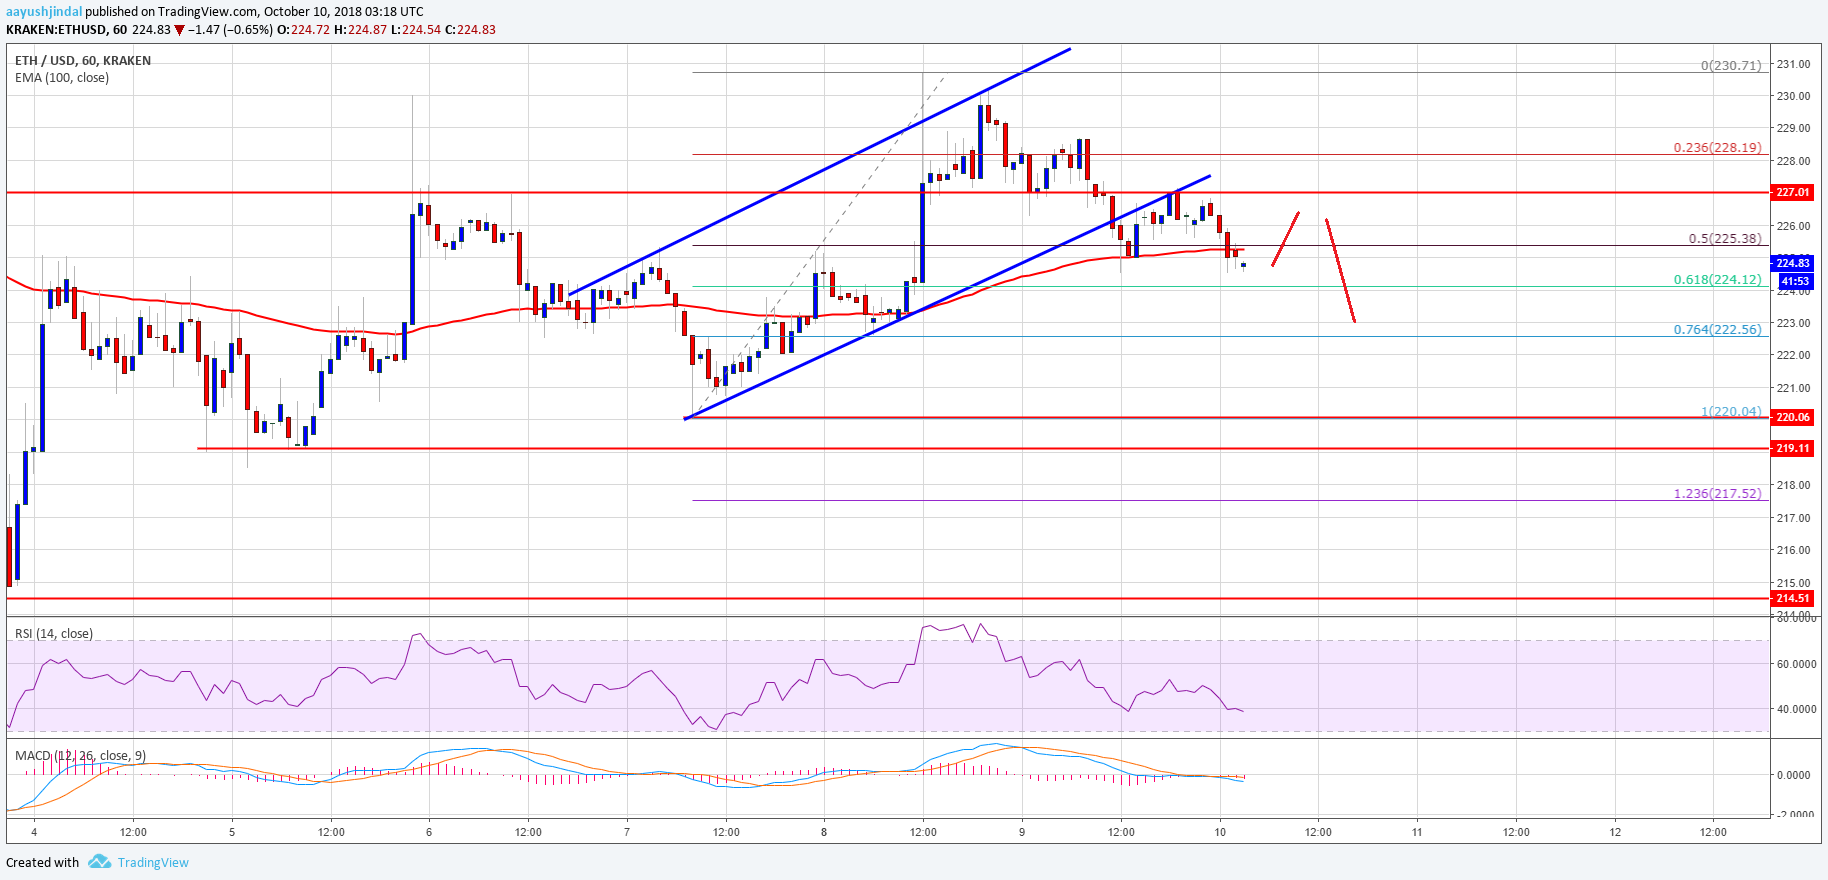 Ethereum Price Analysis: ETH/USD Losing Momentum Below $230 2